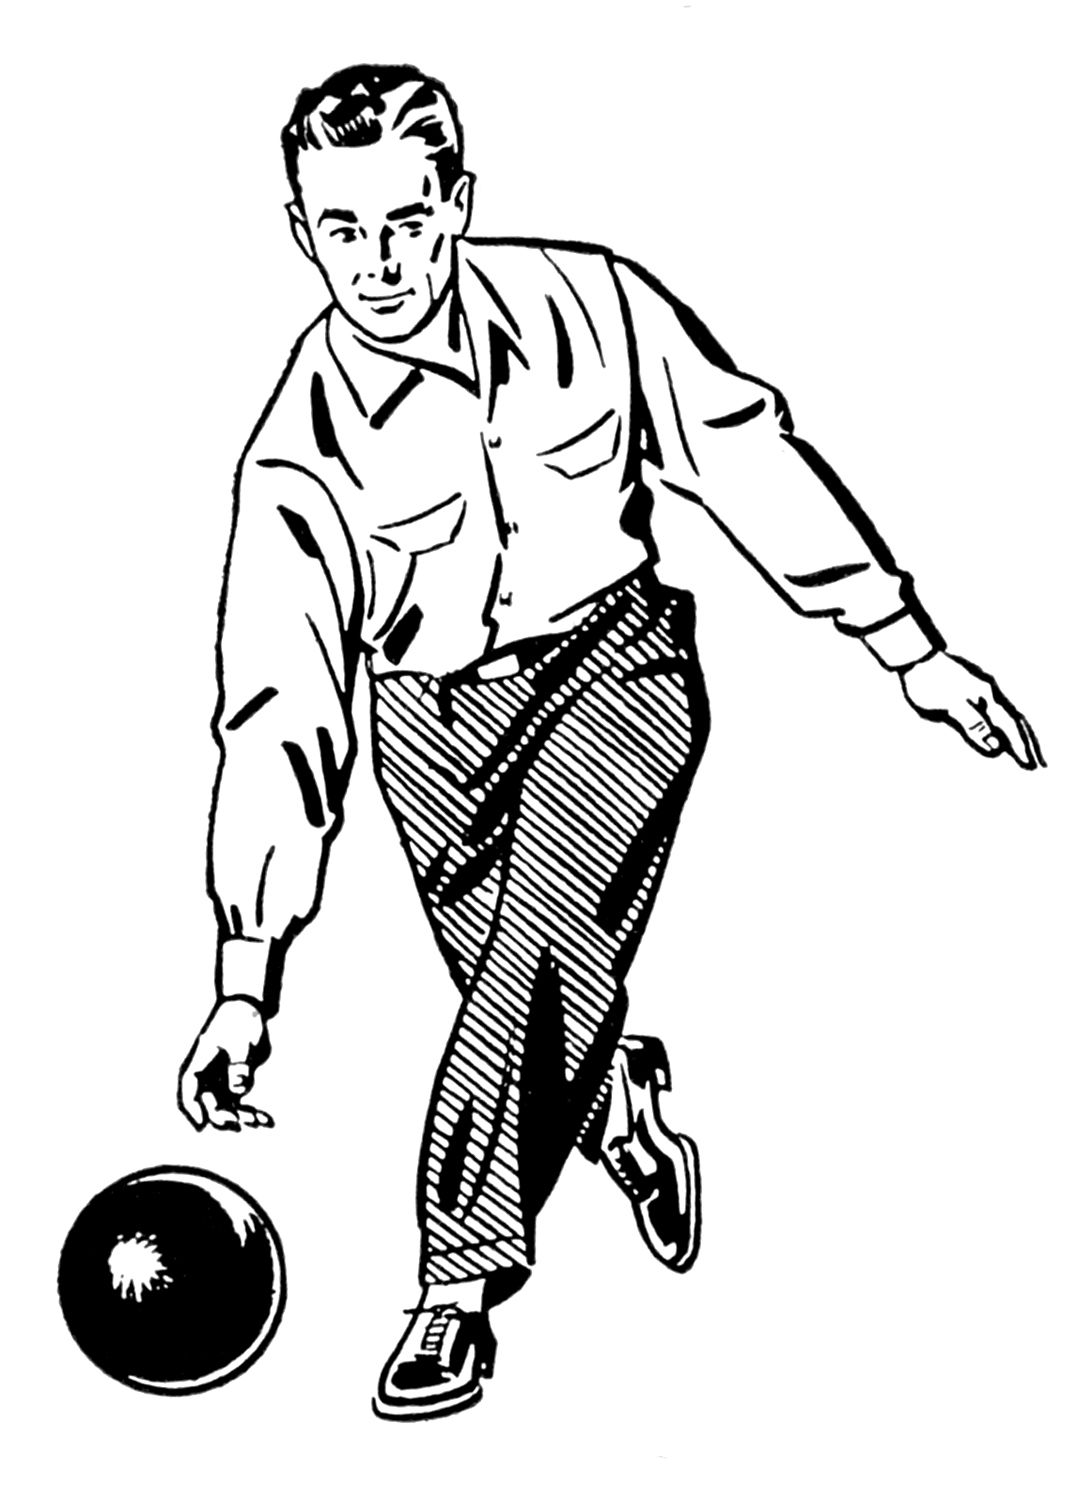 Clipart bowler clip art royalty free stock Retro Clip Art - Woman and Man Bowling | BOWLING | Clip art, Female ... clip art royalty free stock